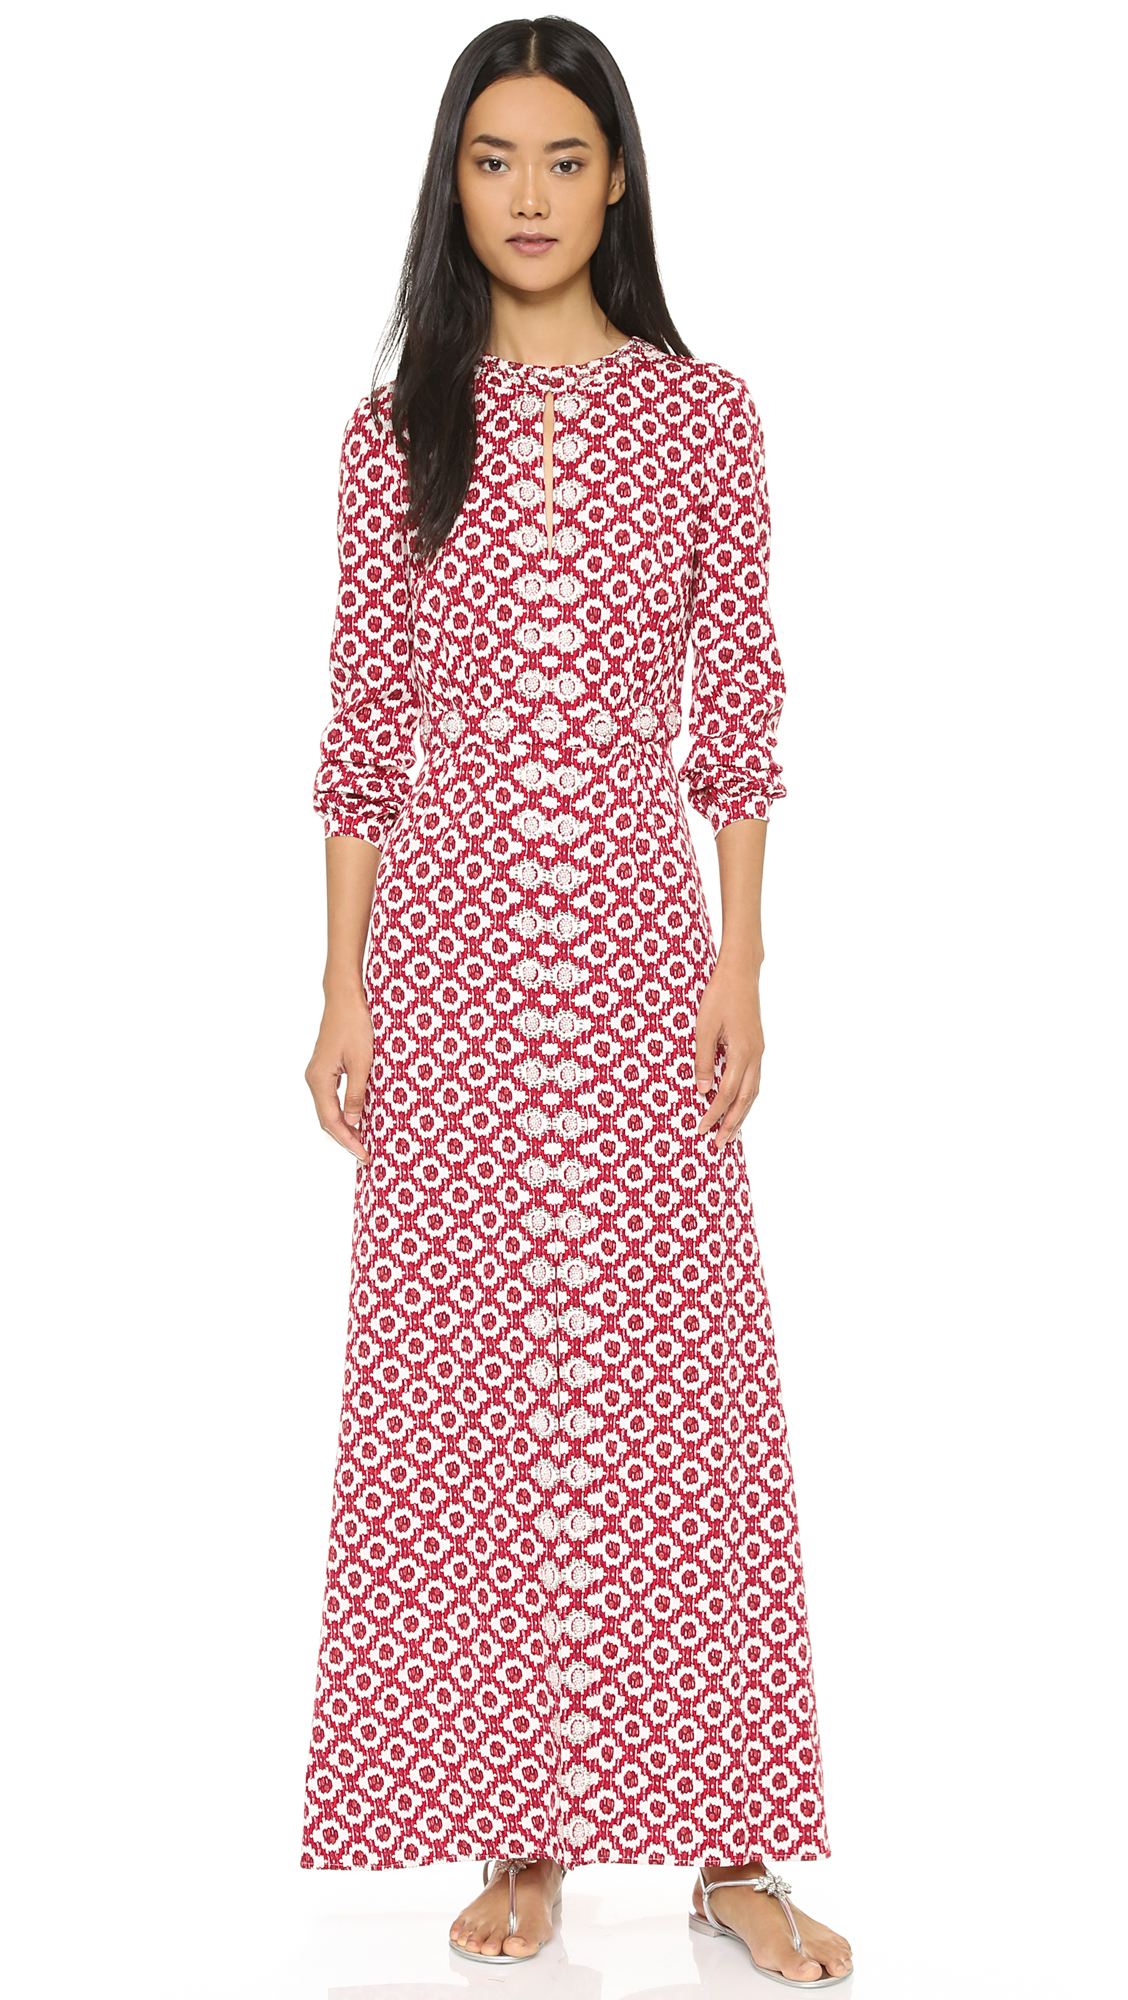 adc38fcfb5db Lyst - Tory Burch Embellished Textured Maxi Dress - Red Currant ...